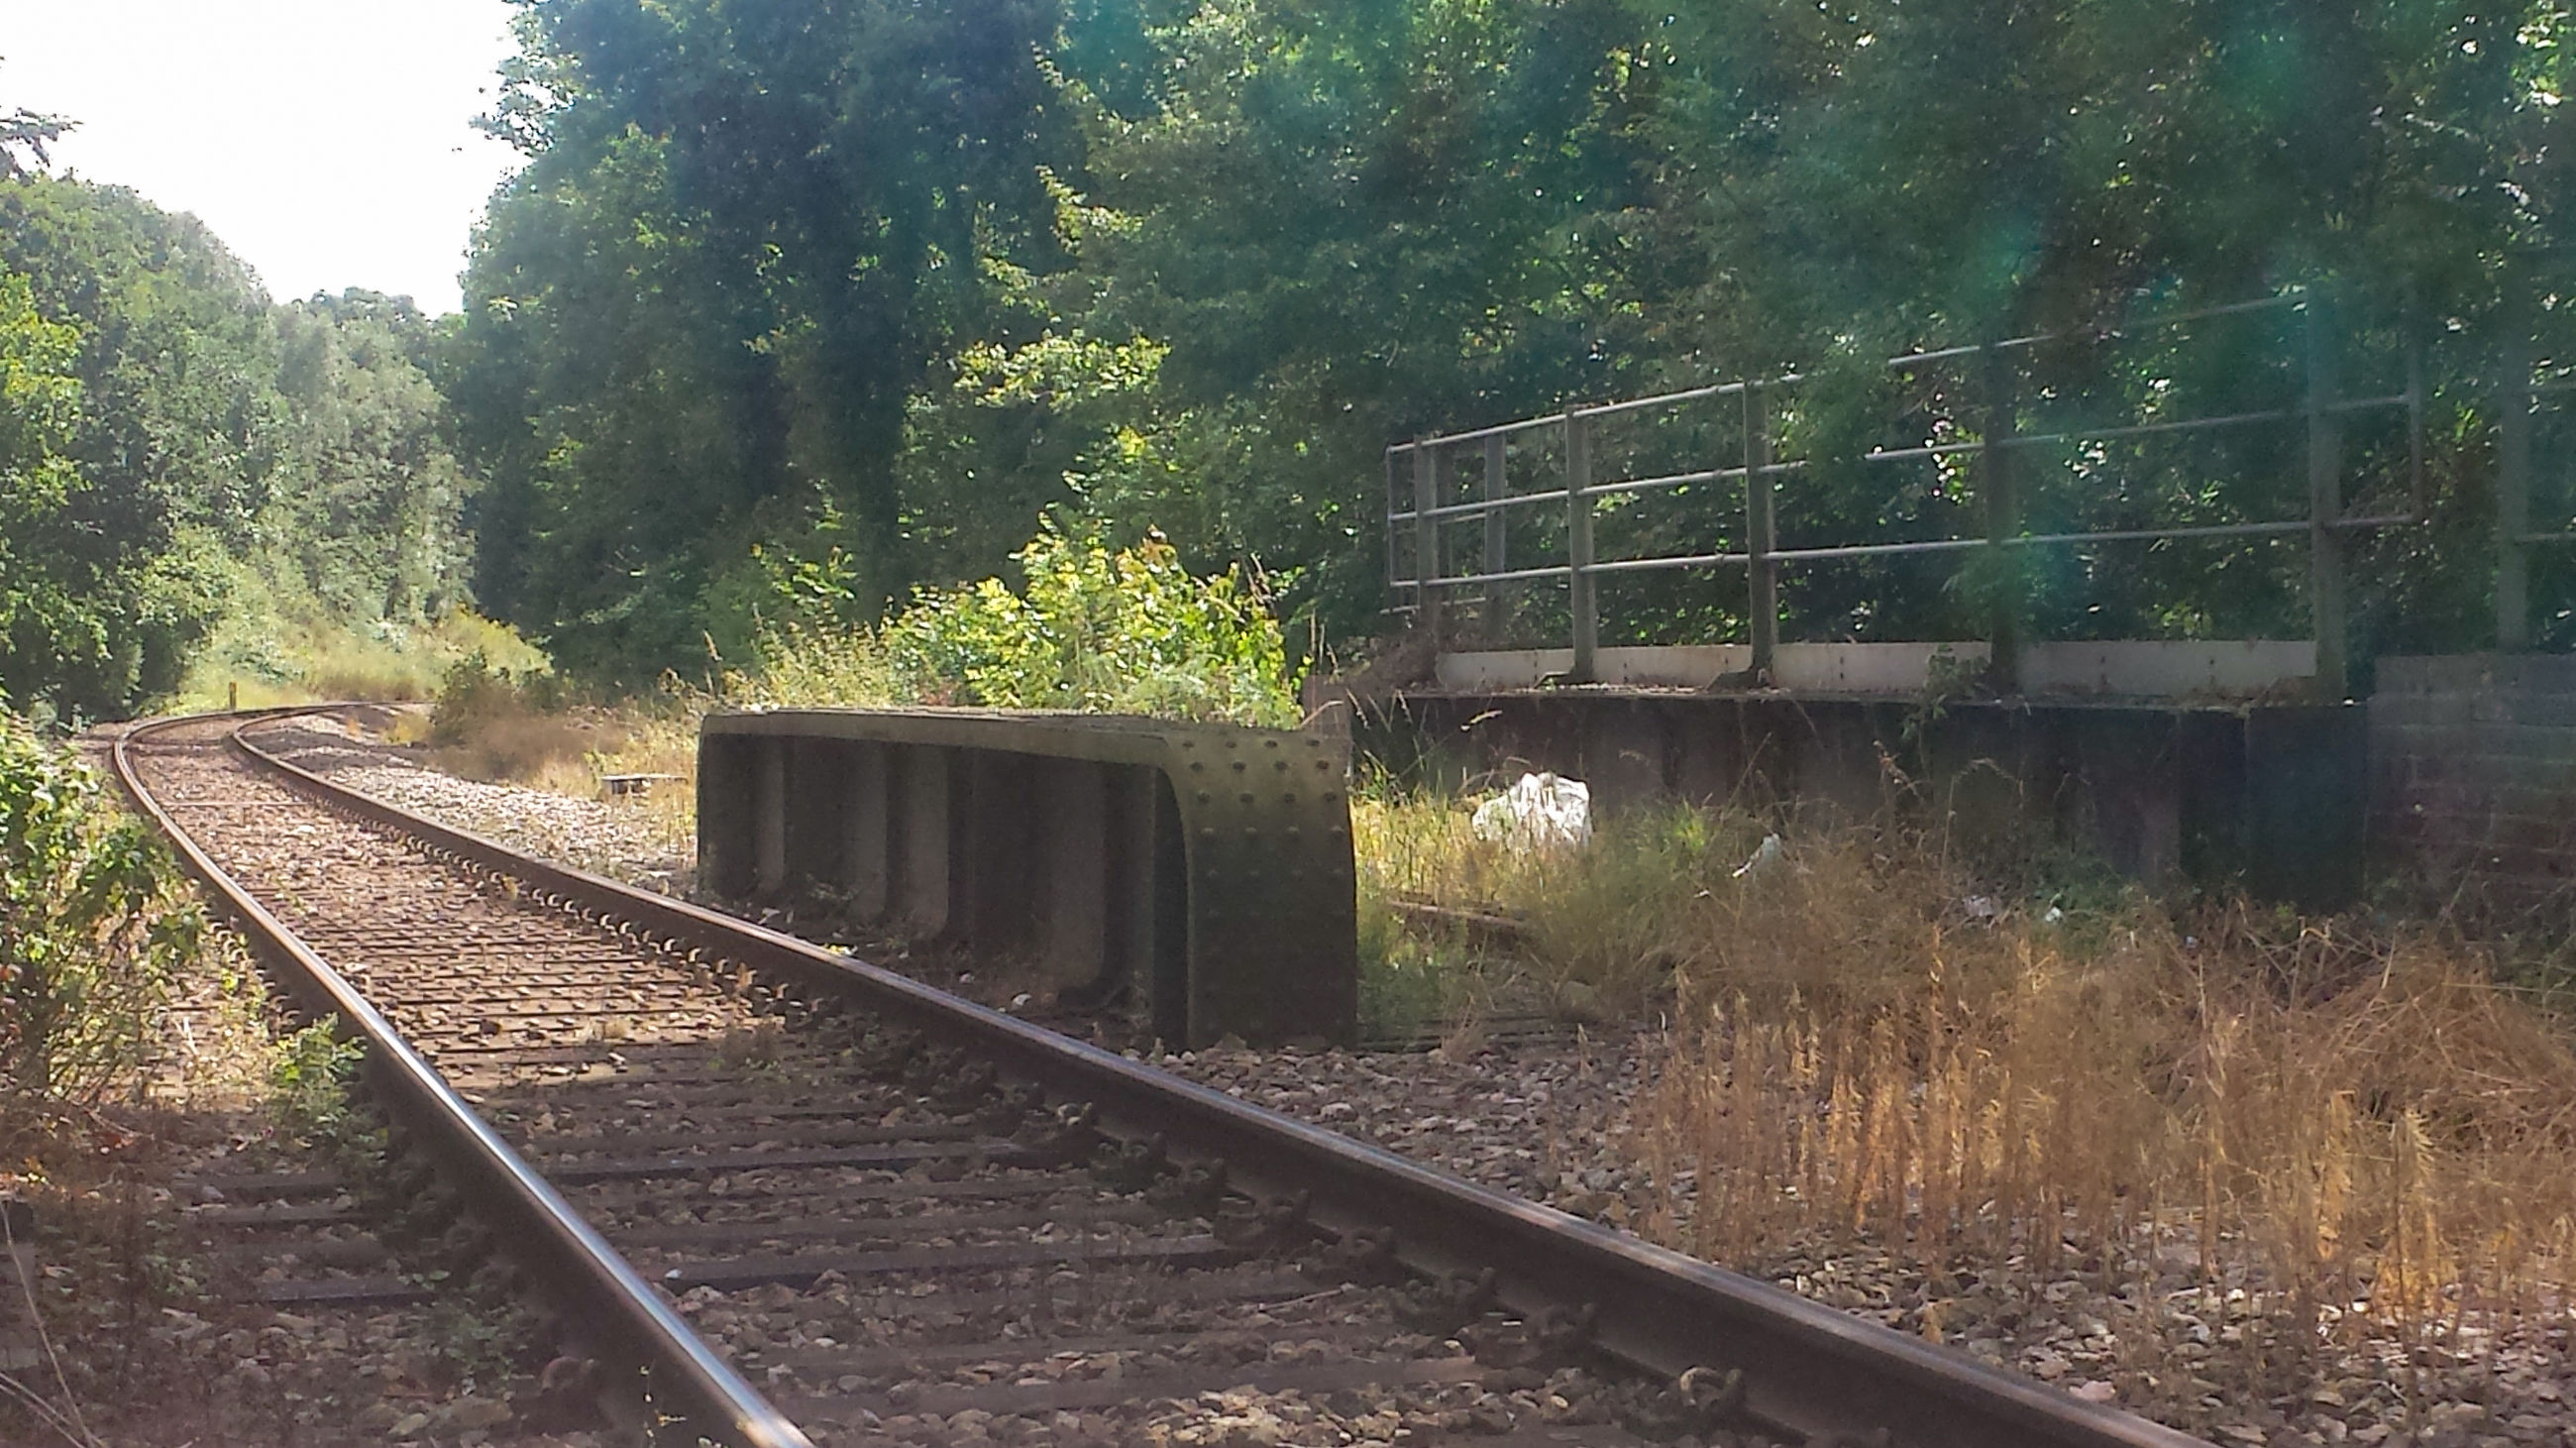 tree, railroad track, transportation, rail transportation, growth, the way forward, green color, day, long, outdoors, nature, railway track, journey, no people, train track, straight, scenics, non-urban scene